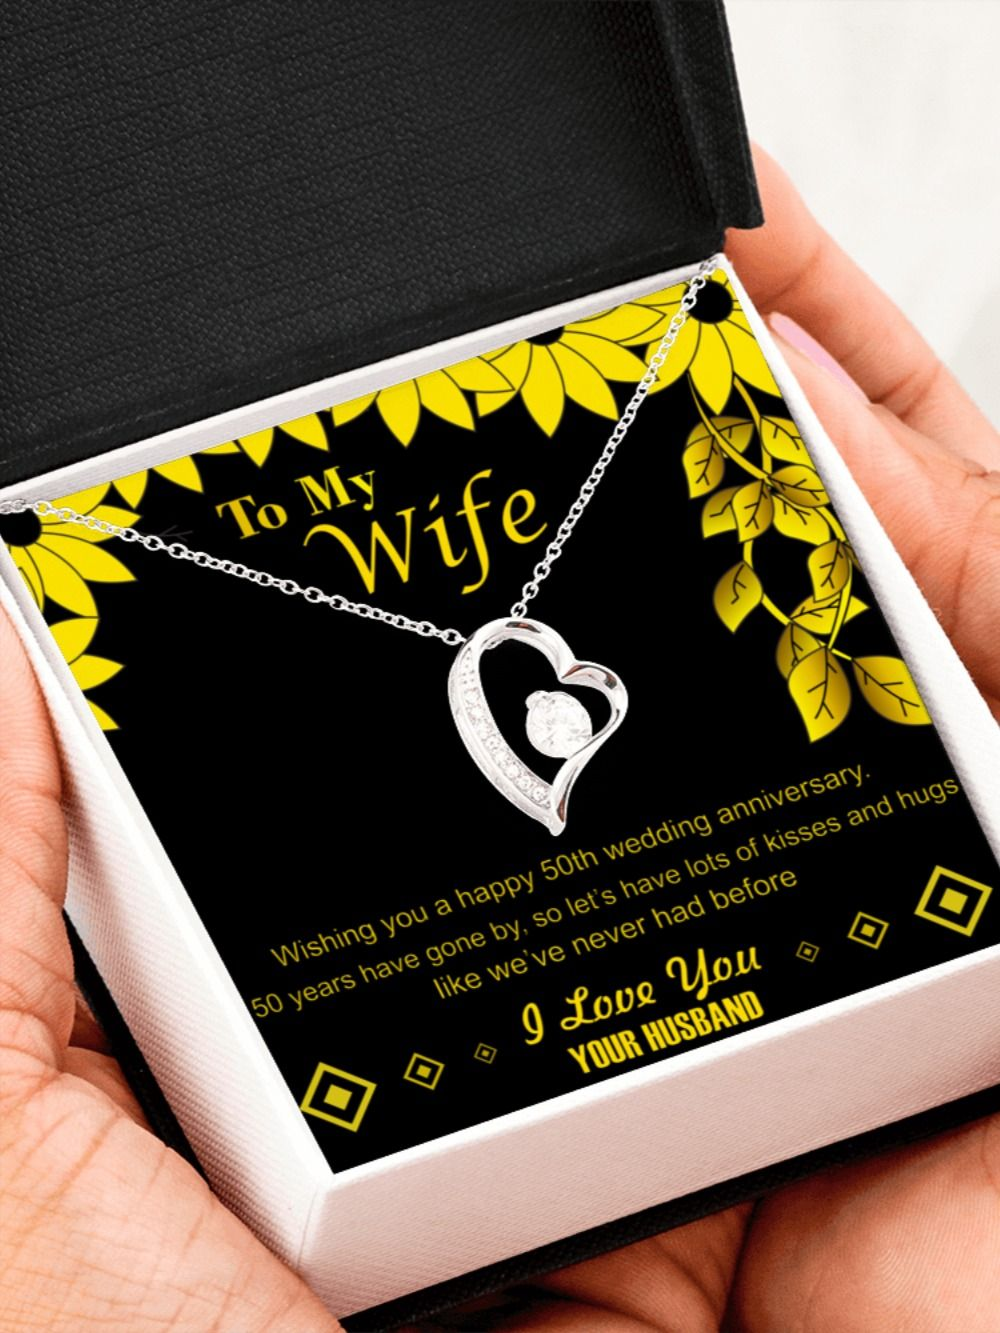 50th Golden Wedding Anniversary Pendant Necklace Gift For Wife Her Gold Jewelry Present Ideas In 2020 50 Wedding Anniversary Gifts 50th Wedding Anniversary 50 Golden Wedding Anniversary